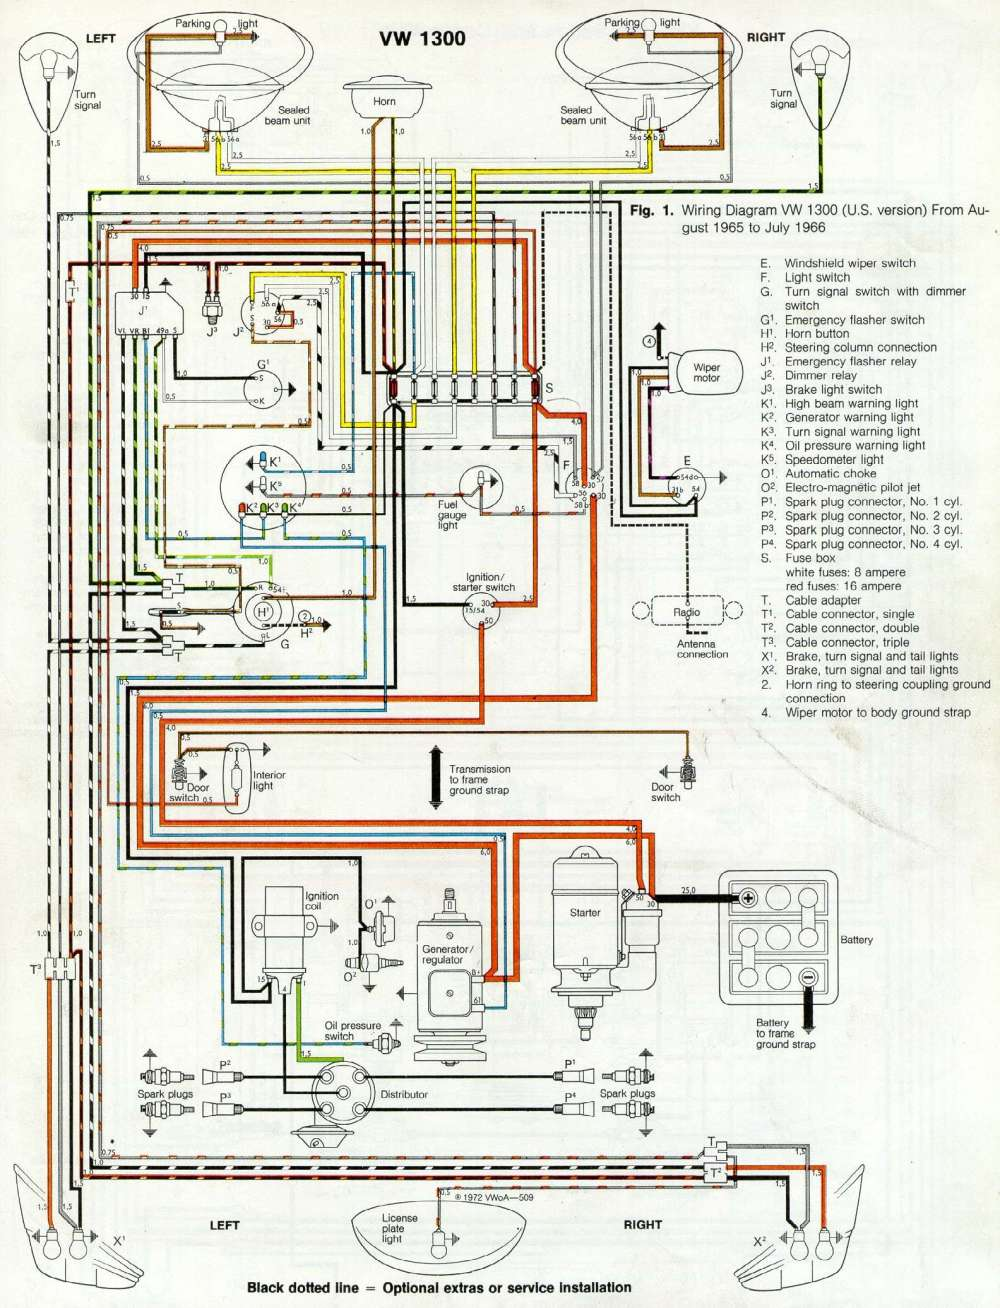 medium resolution of 1966 vw coil wire diagram wiring diagram repair guidesthesamba com type 1 wiring diagrams1966 vw coil